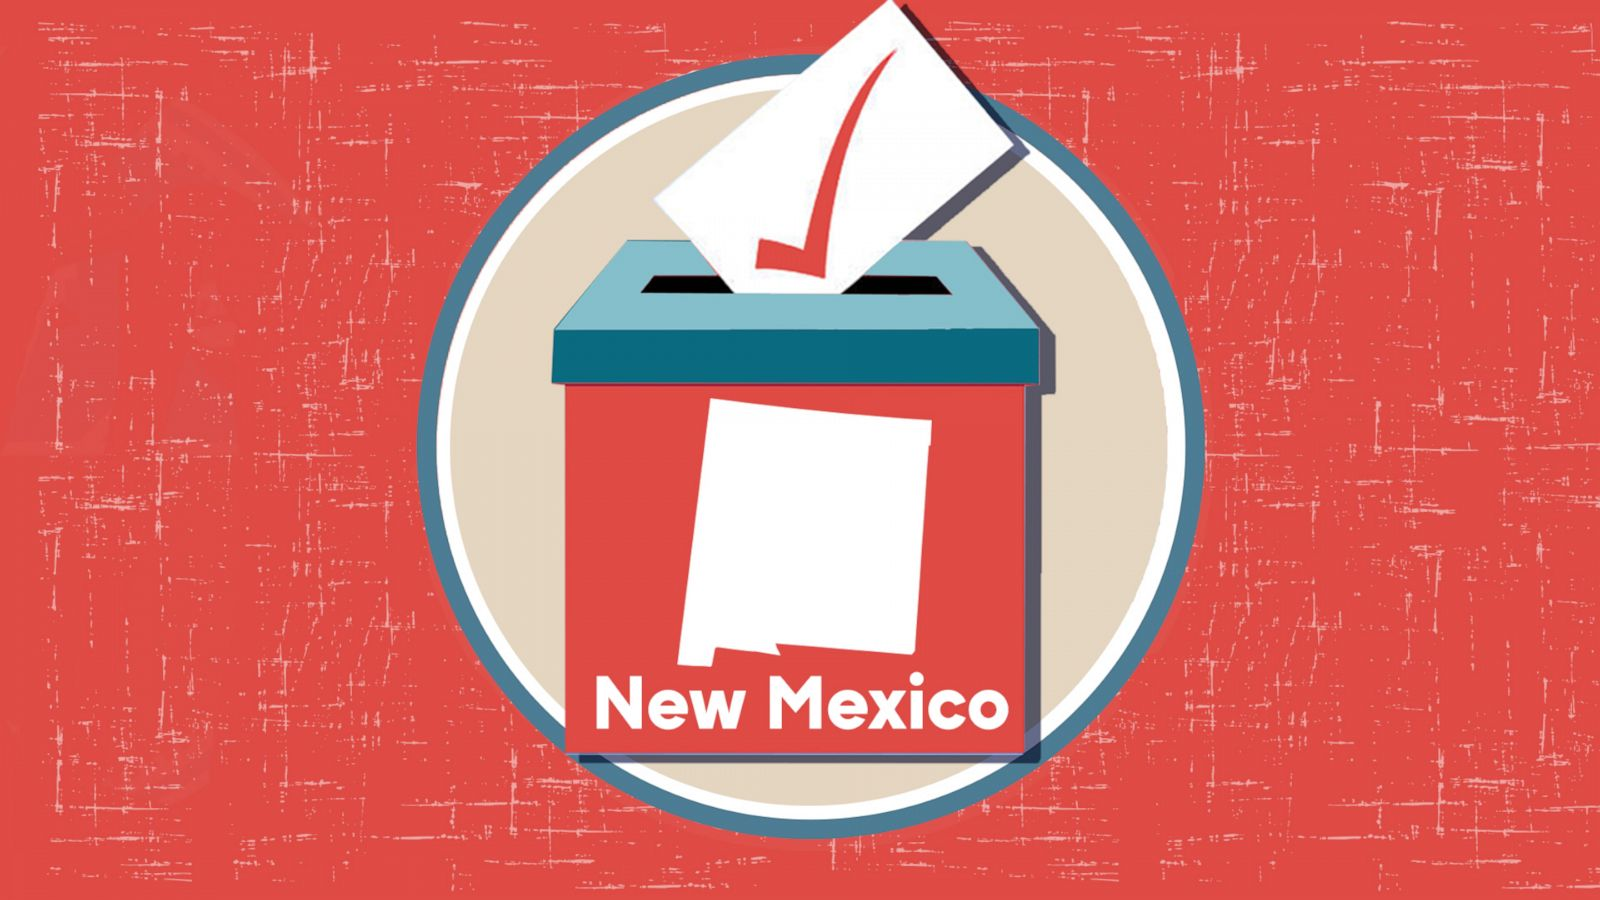 vote New Mexico aflep.org